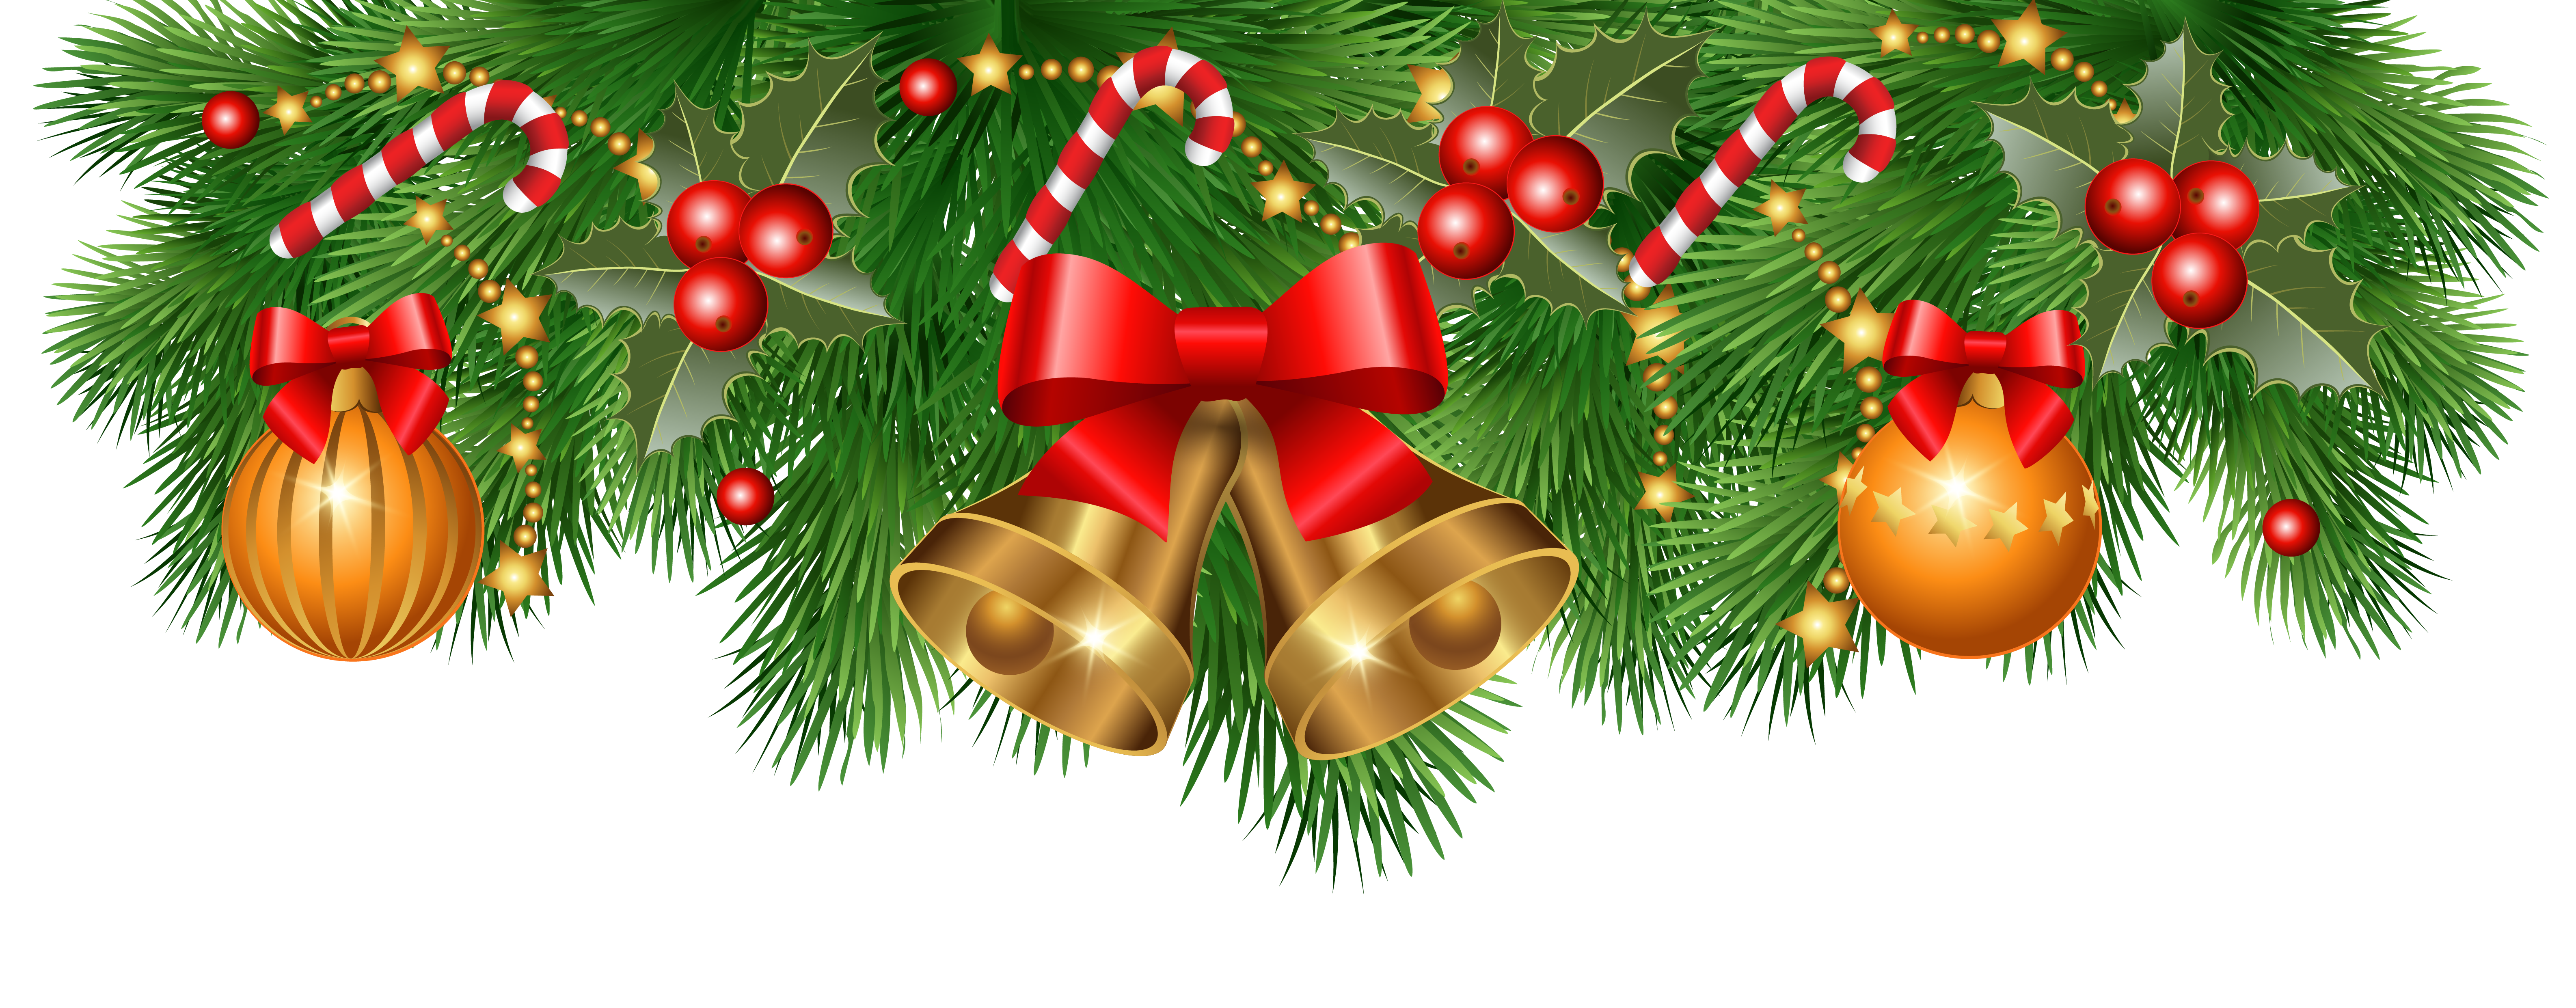 Christmas Decorations Clipart Borders   Happy Holidays!_.